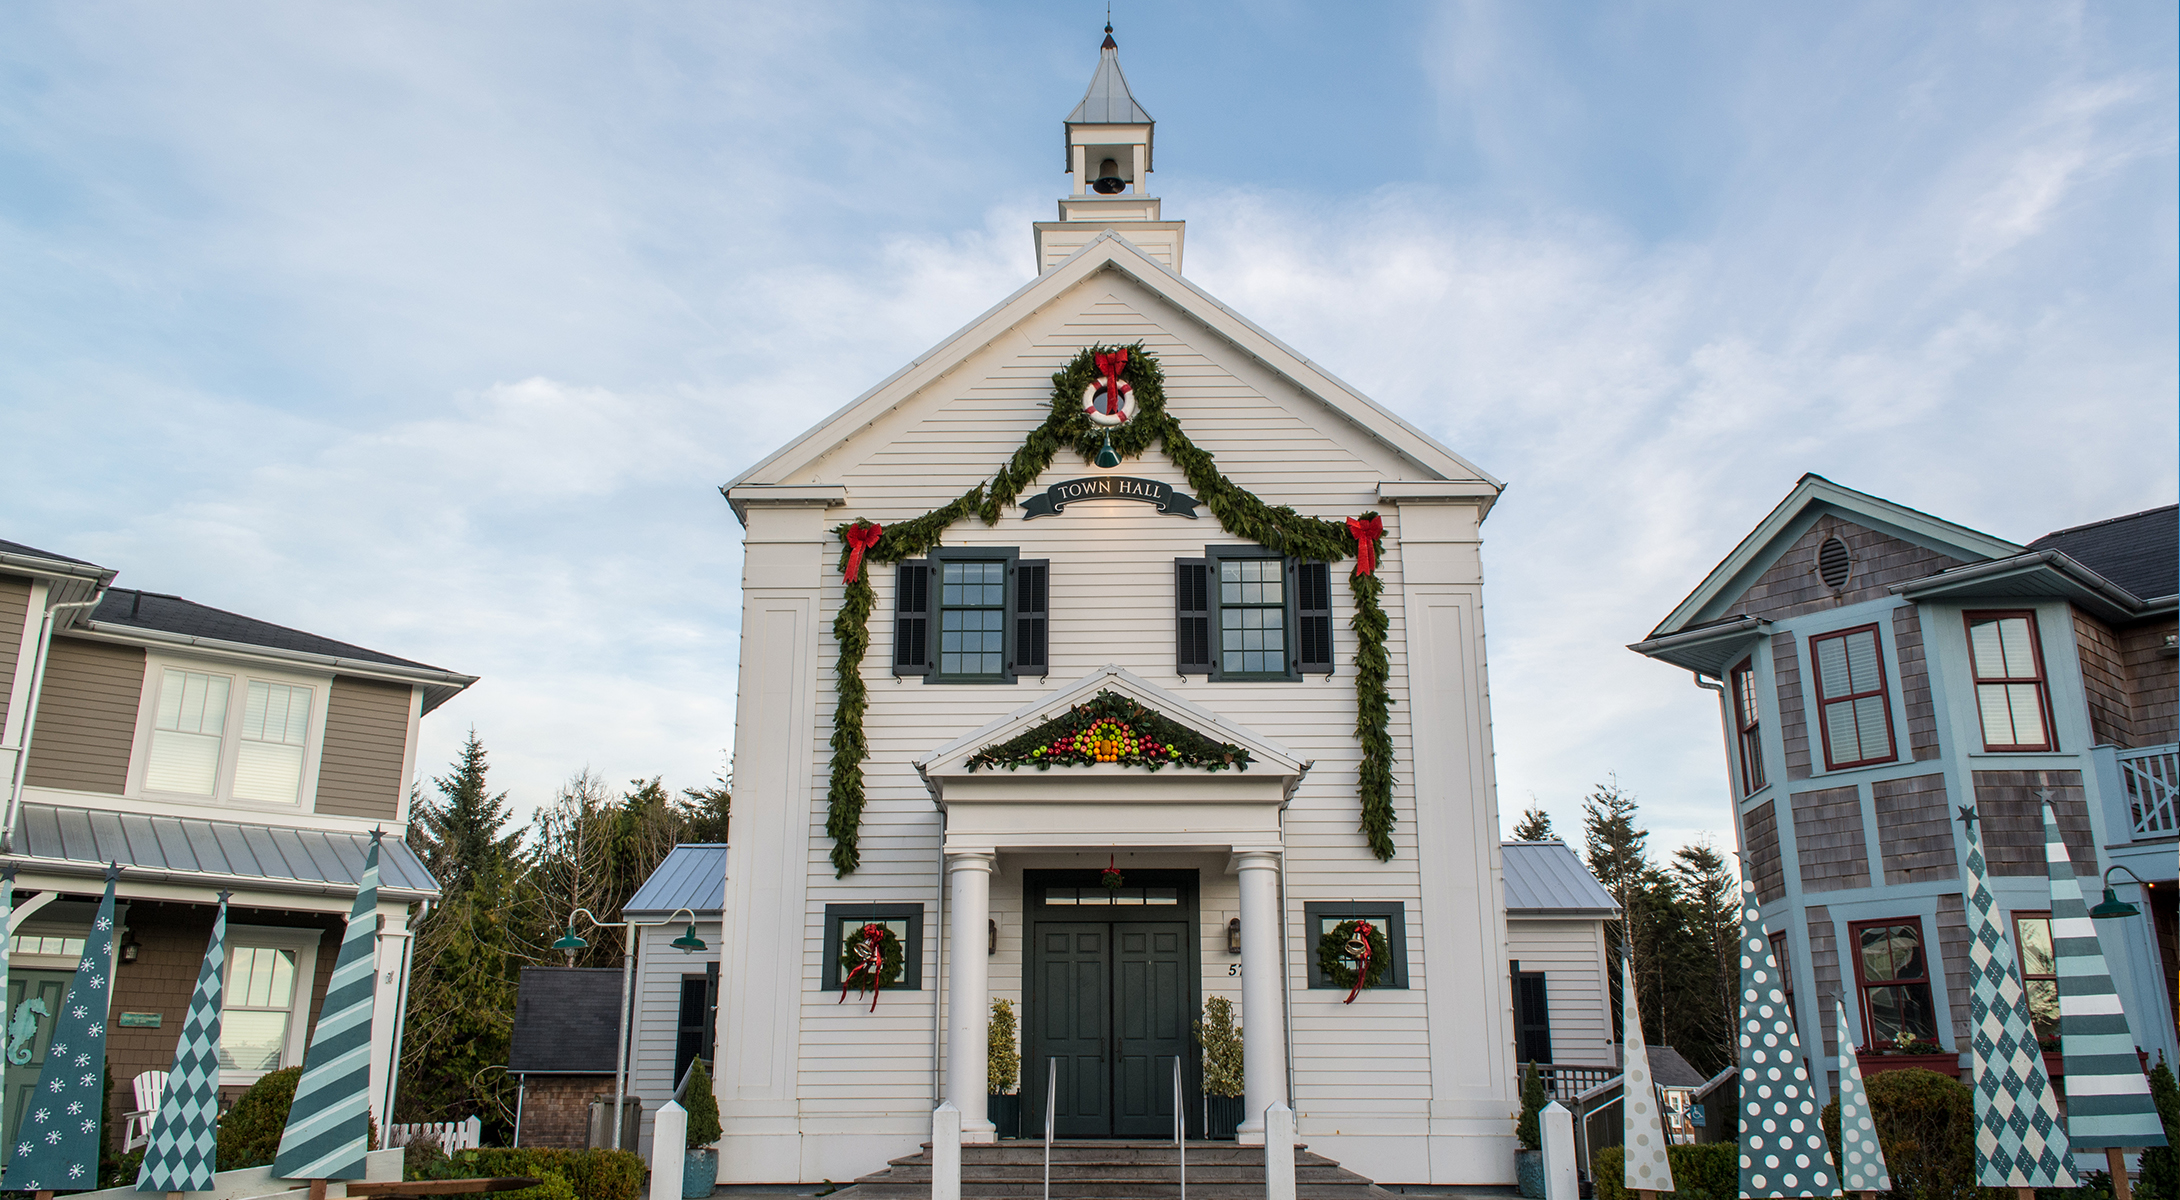 Seabrook's Town Hall during Christmas